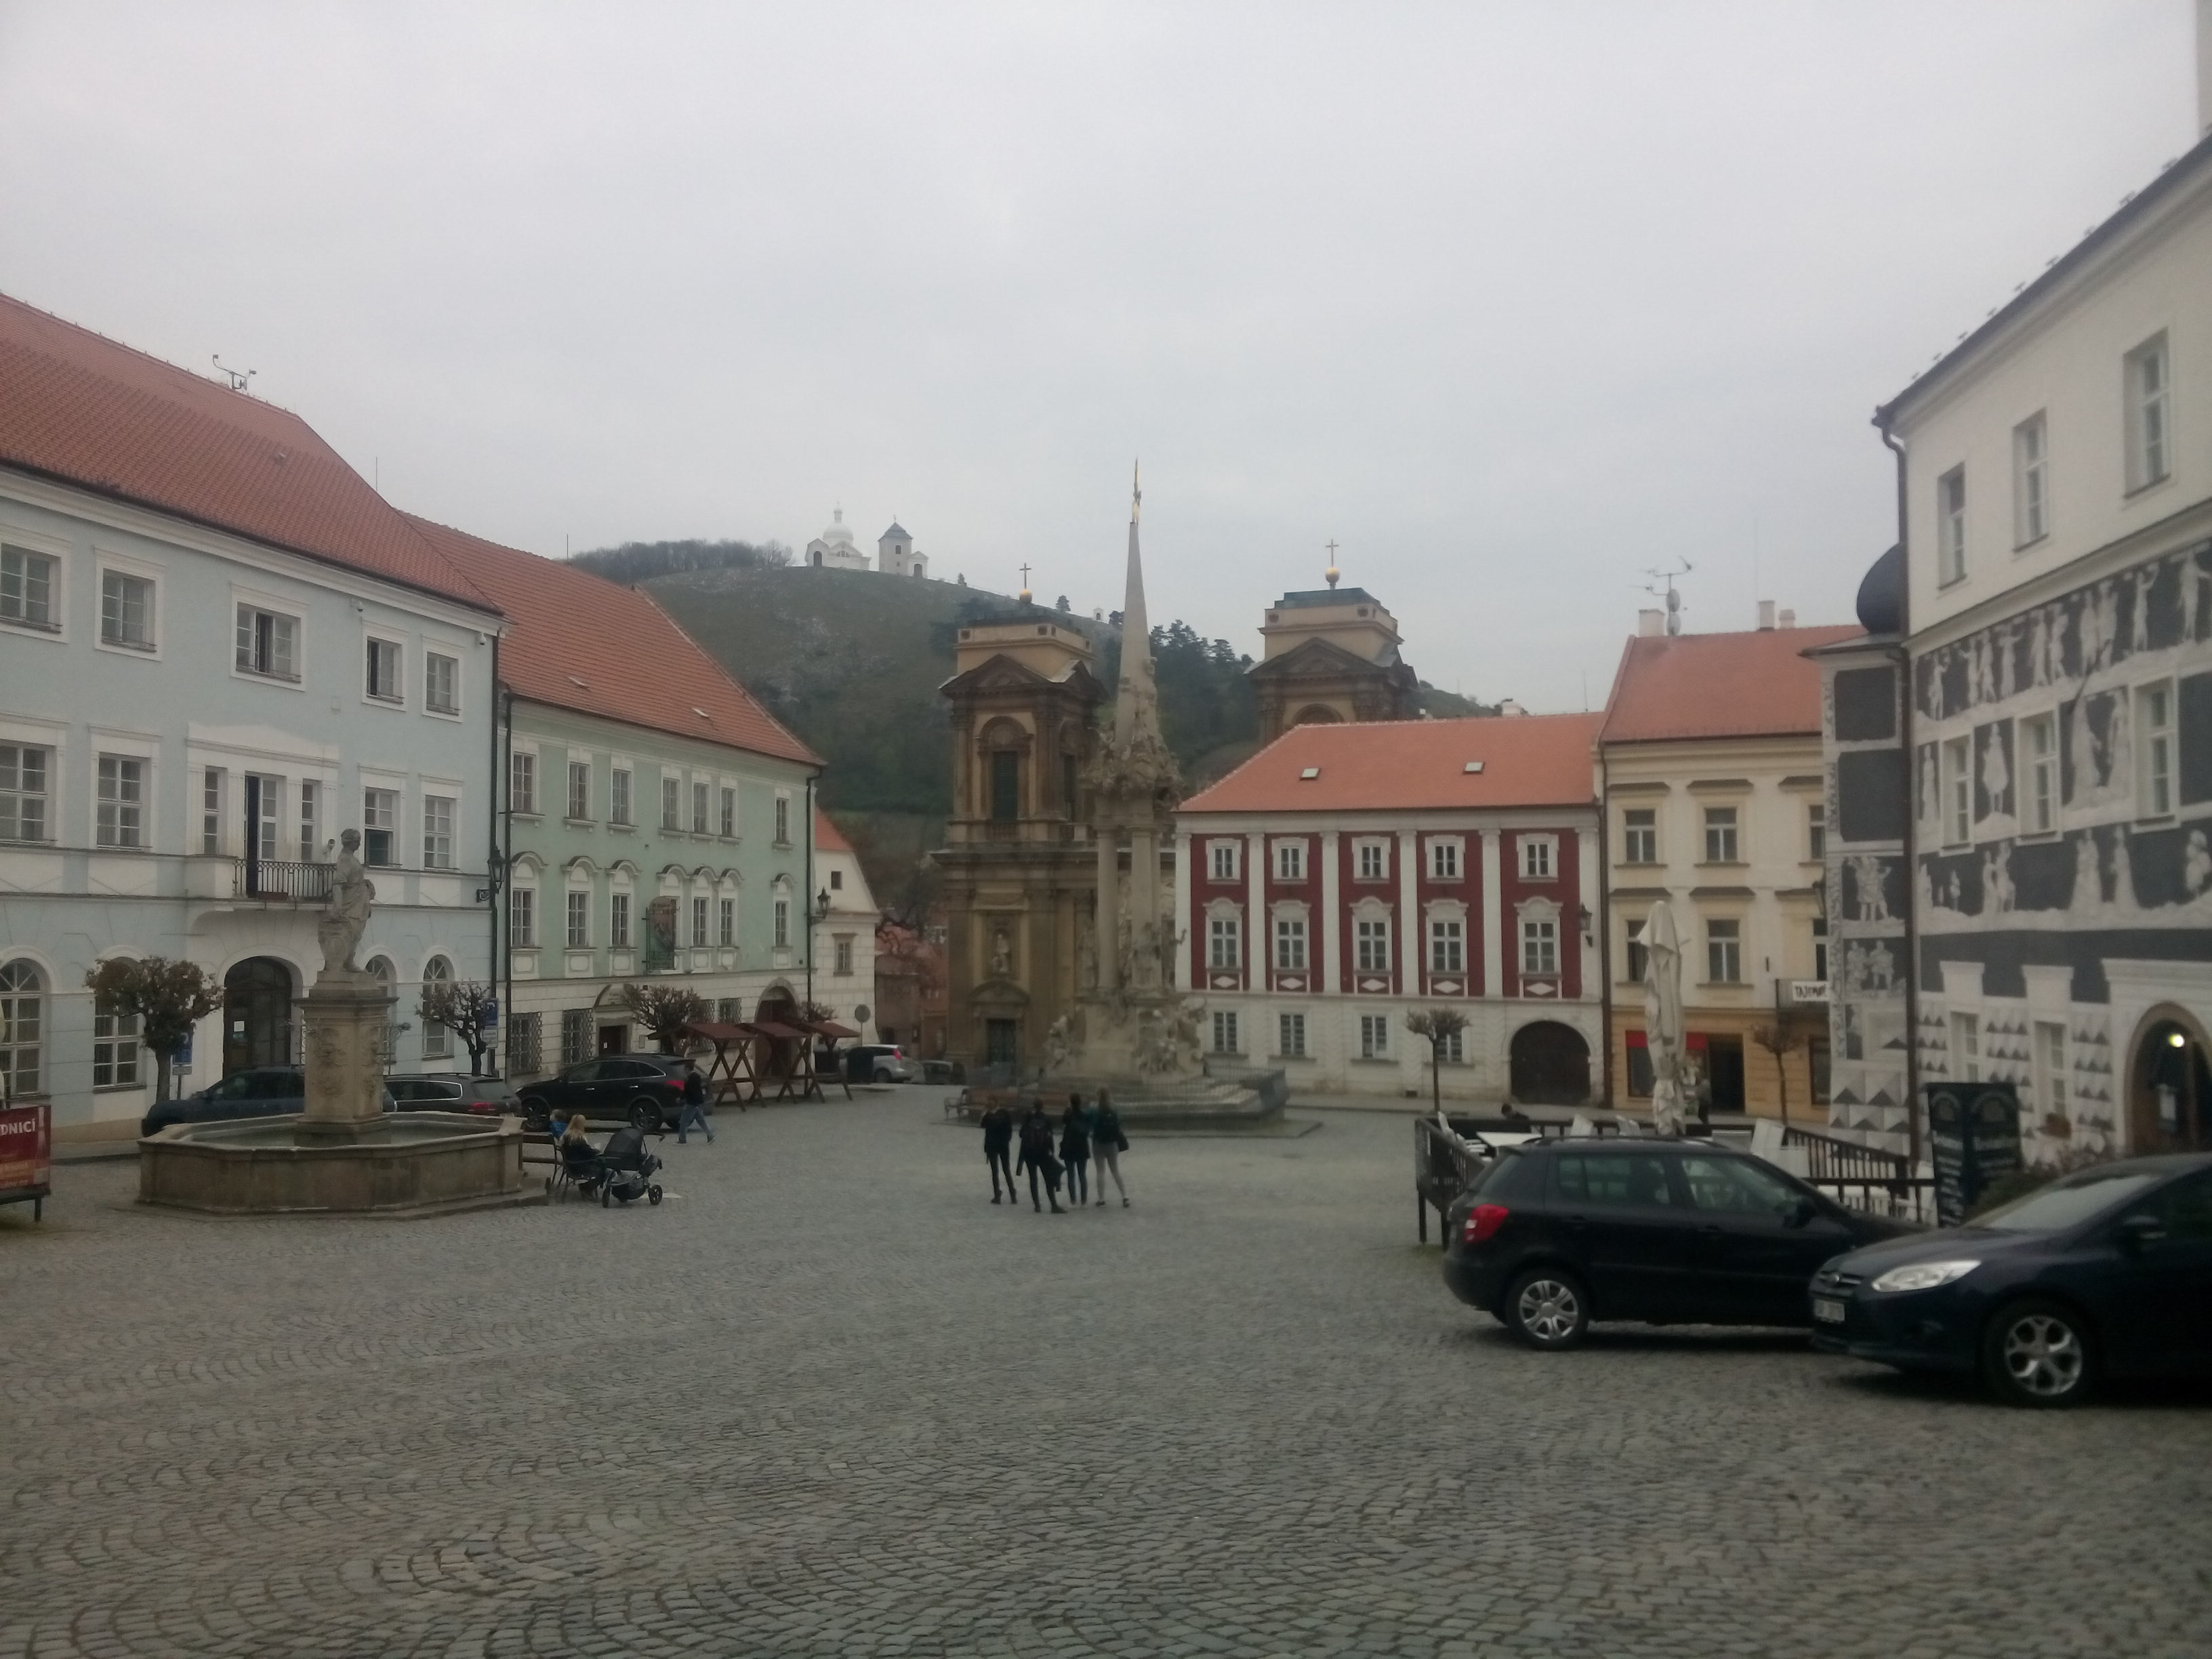 A cobbled town square with a couple of cars and a tower in the middle and a hill in the backgrounds